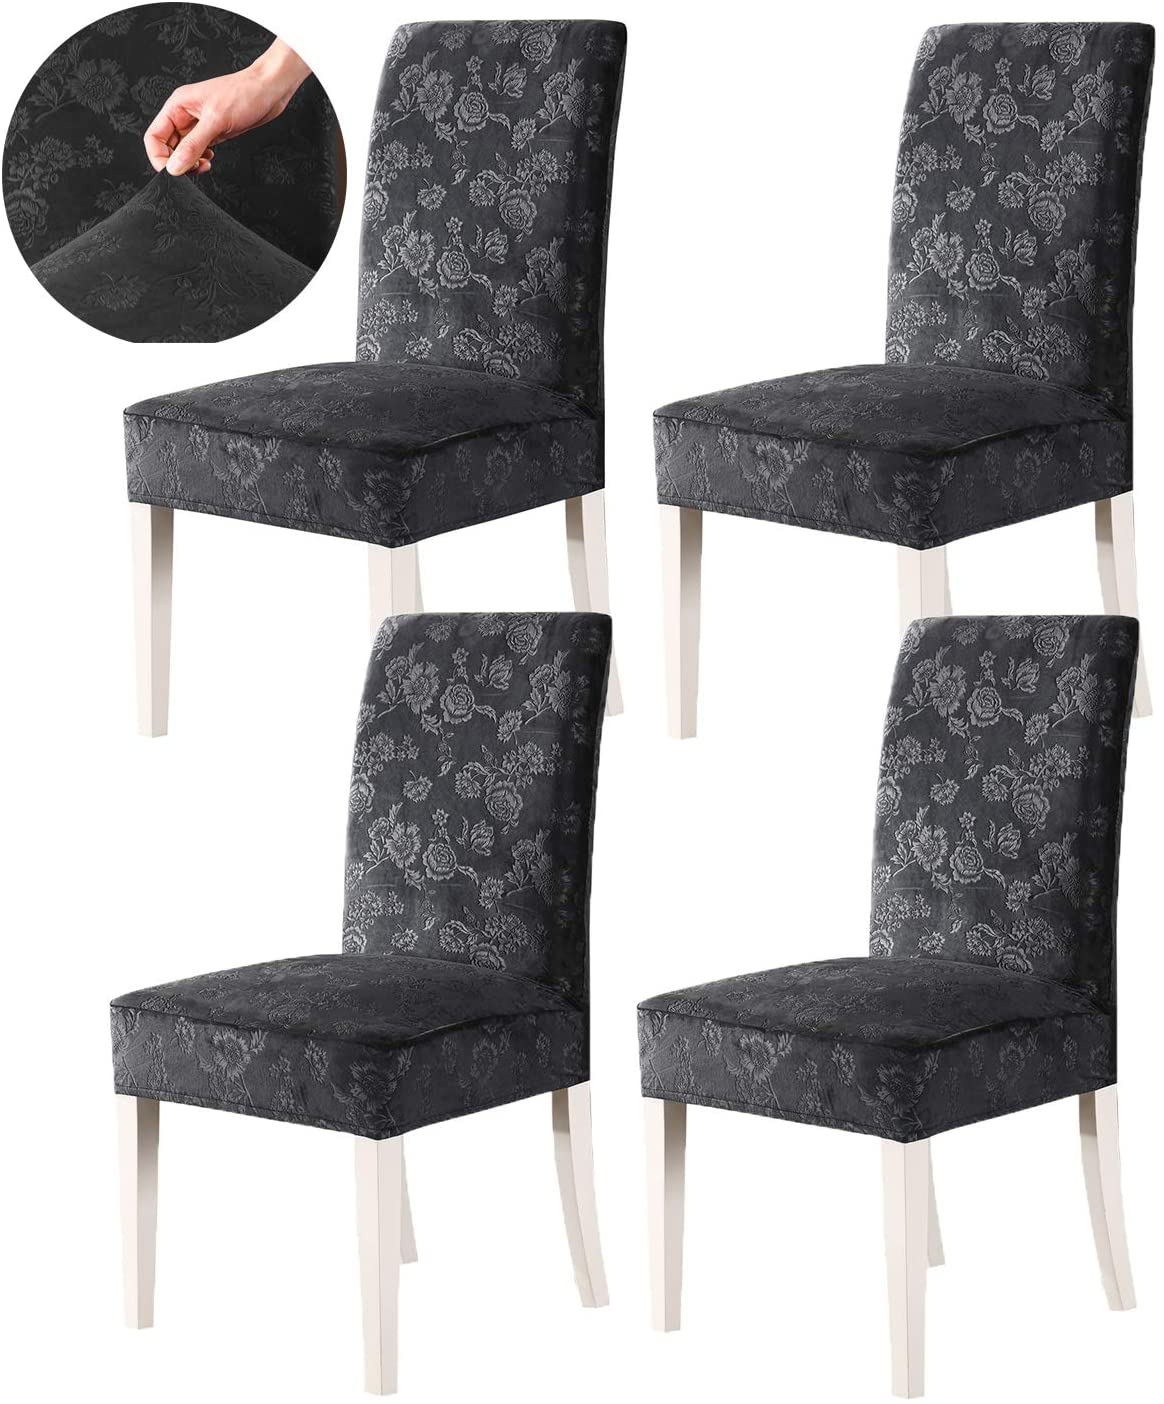 GIANCO FERRO Stretch Velvet Dinning Chair Covers Spandex Floral Pattern Wedding Banquet Removable Washable Seat Cover Slipcover Kitchen Chairs Protector Wrap Charcoal Gray 4PC